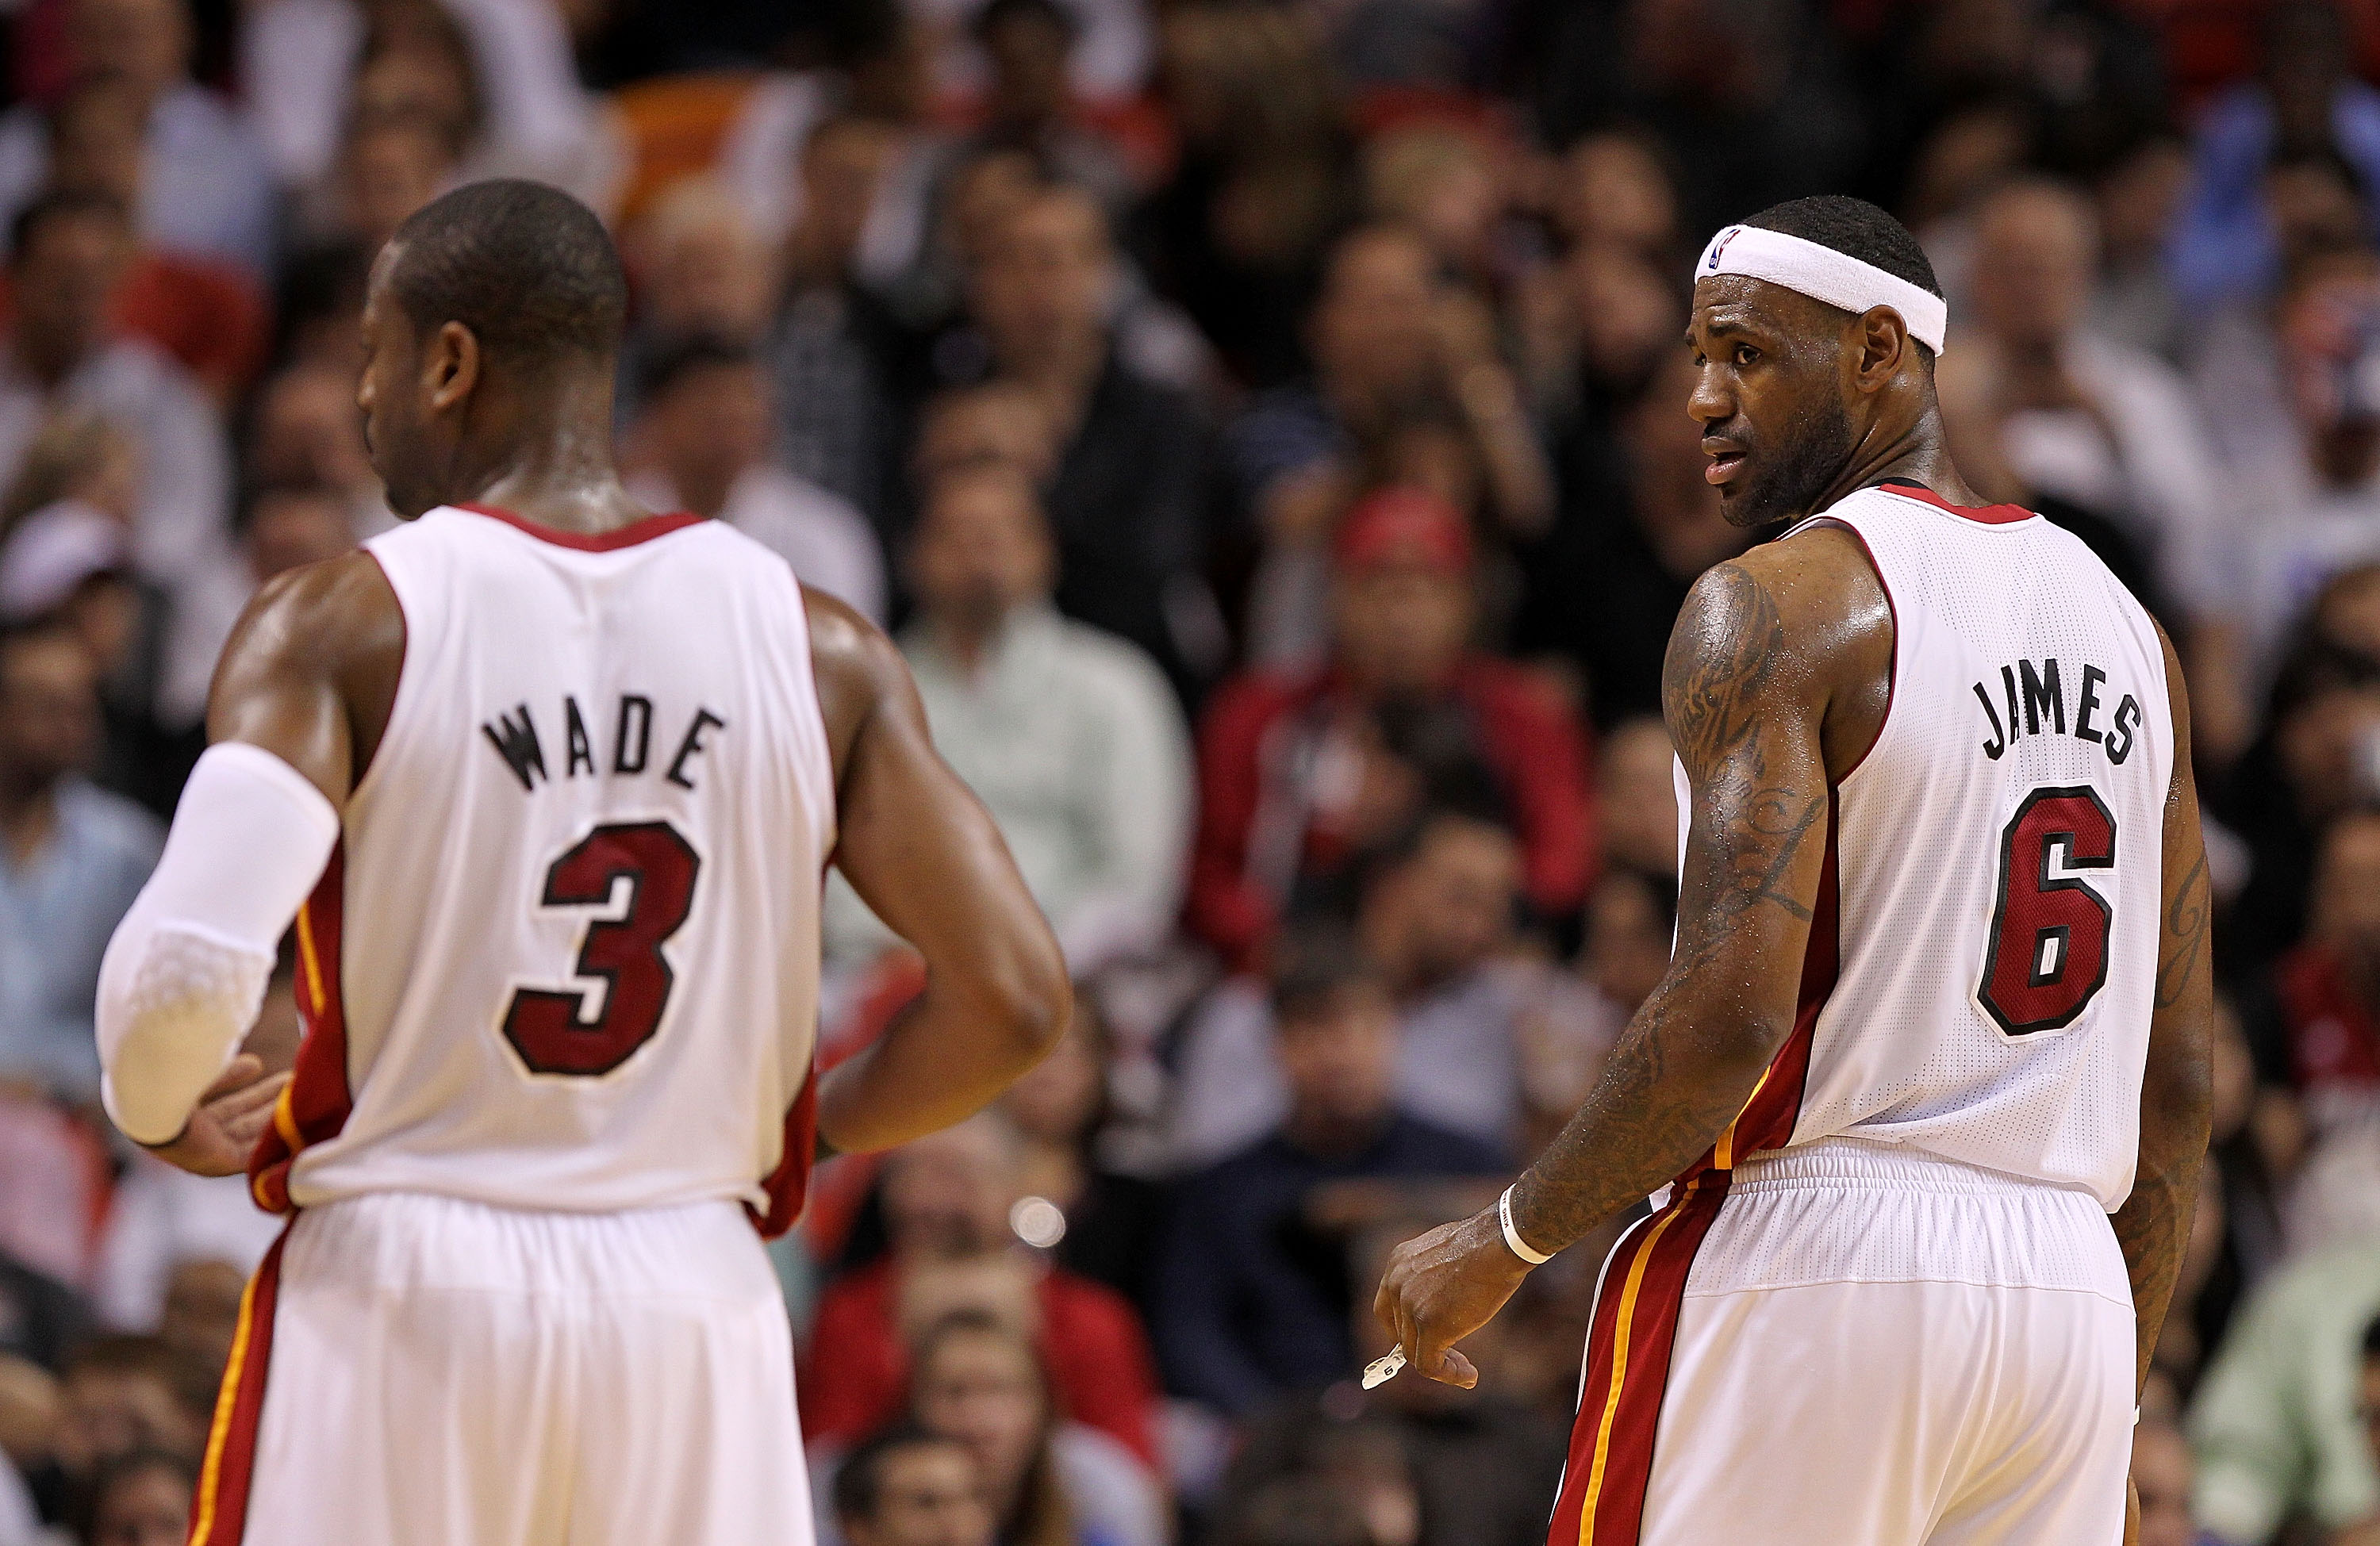 MIAMI, FL - FEBRUARY 08: LeBron James #6 of the Miami Heat looks at Dwyane Wade #3 during a game against the Indiana Pacers at American Airlines Arena on February 8, 2011 in Miami, Florida. NOTE TO USER: User expressly acknowledges and agrees that, by dow